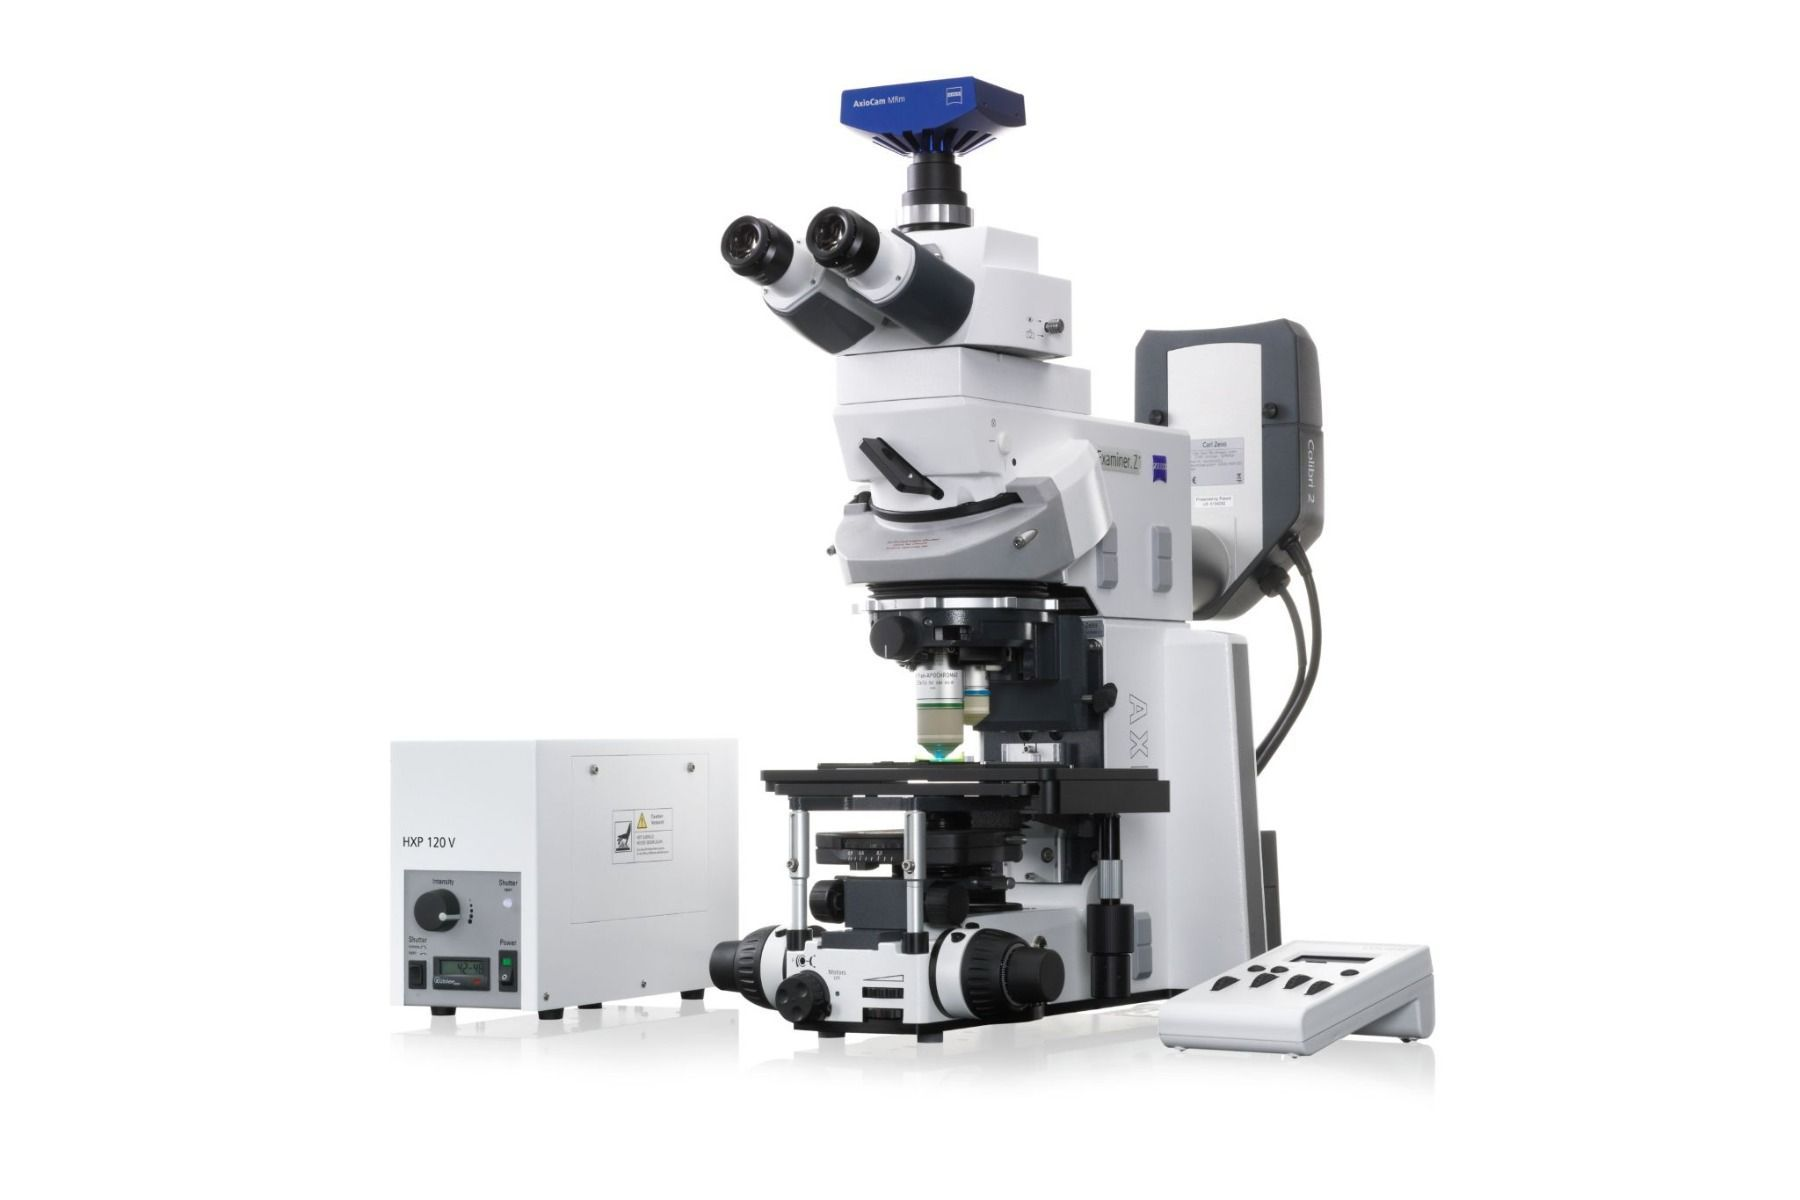 ZEISS Axio Examiner Fixed Stage Upright Microscope